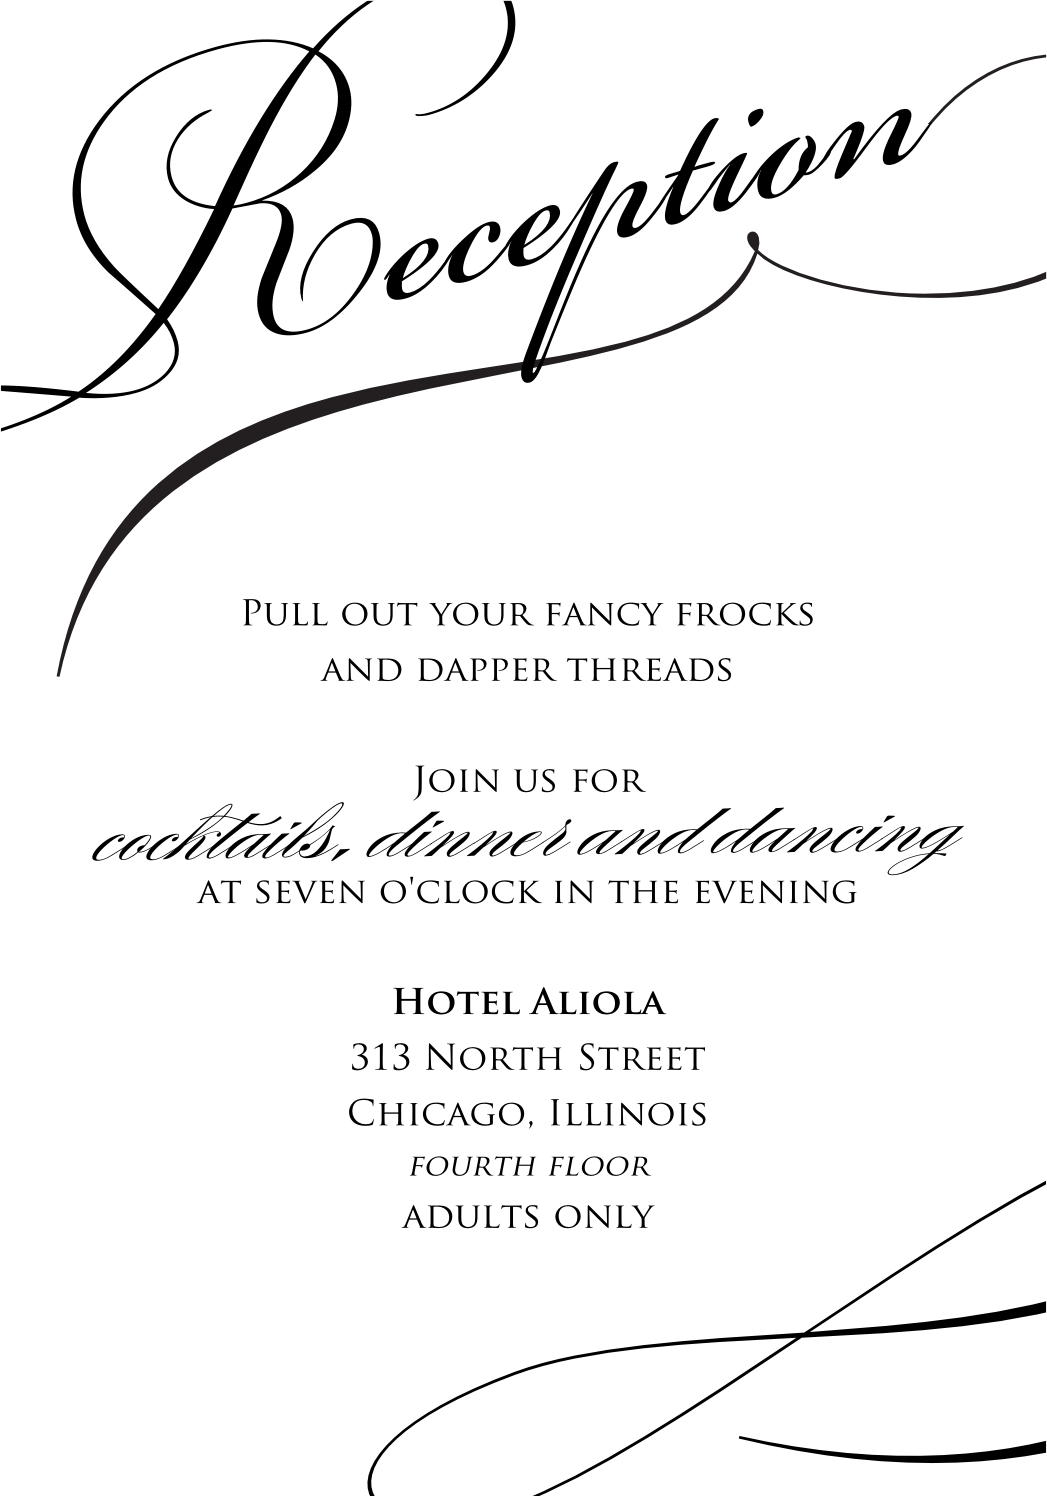 sample wedding reception invitations | Wedding Ideas and Wedding Planning Tips